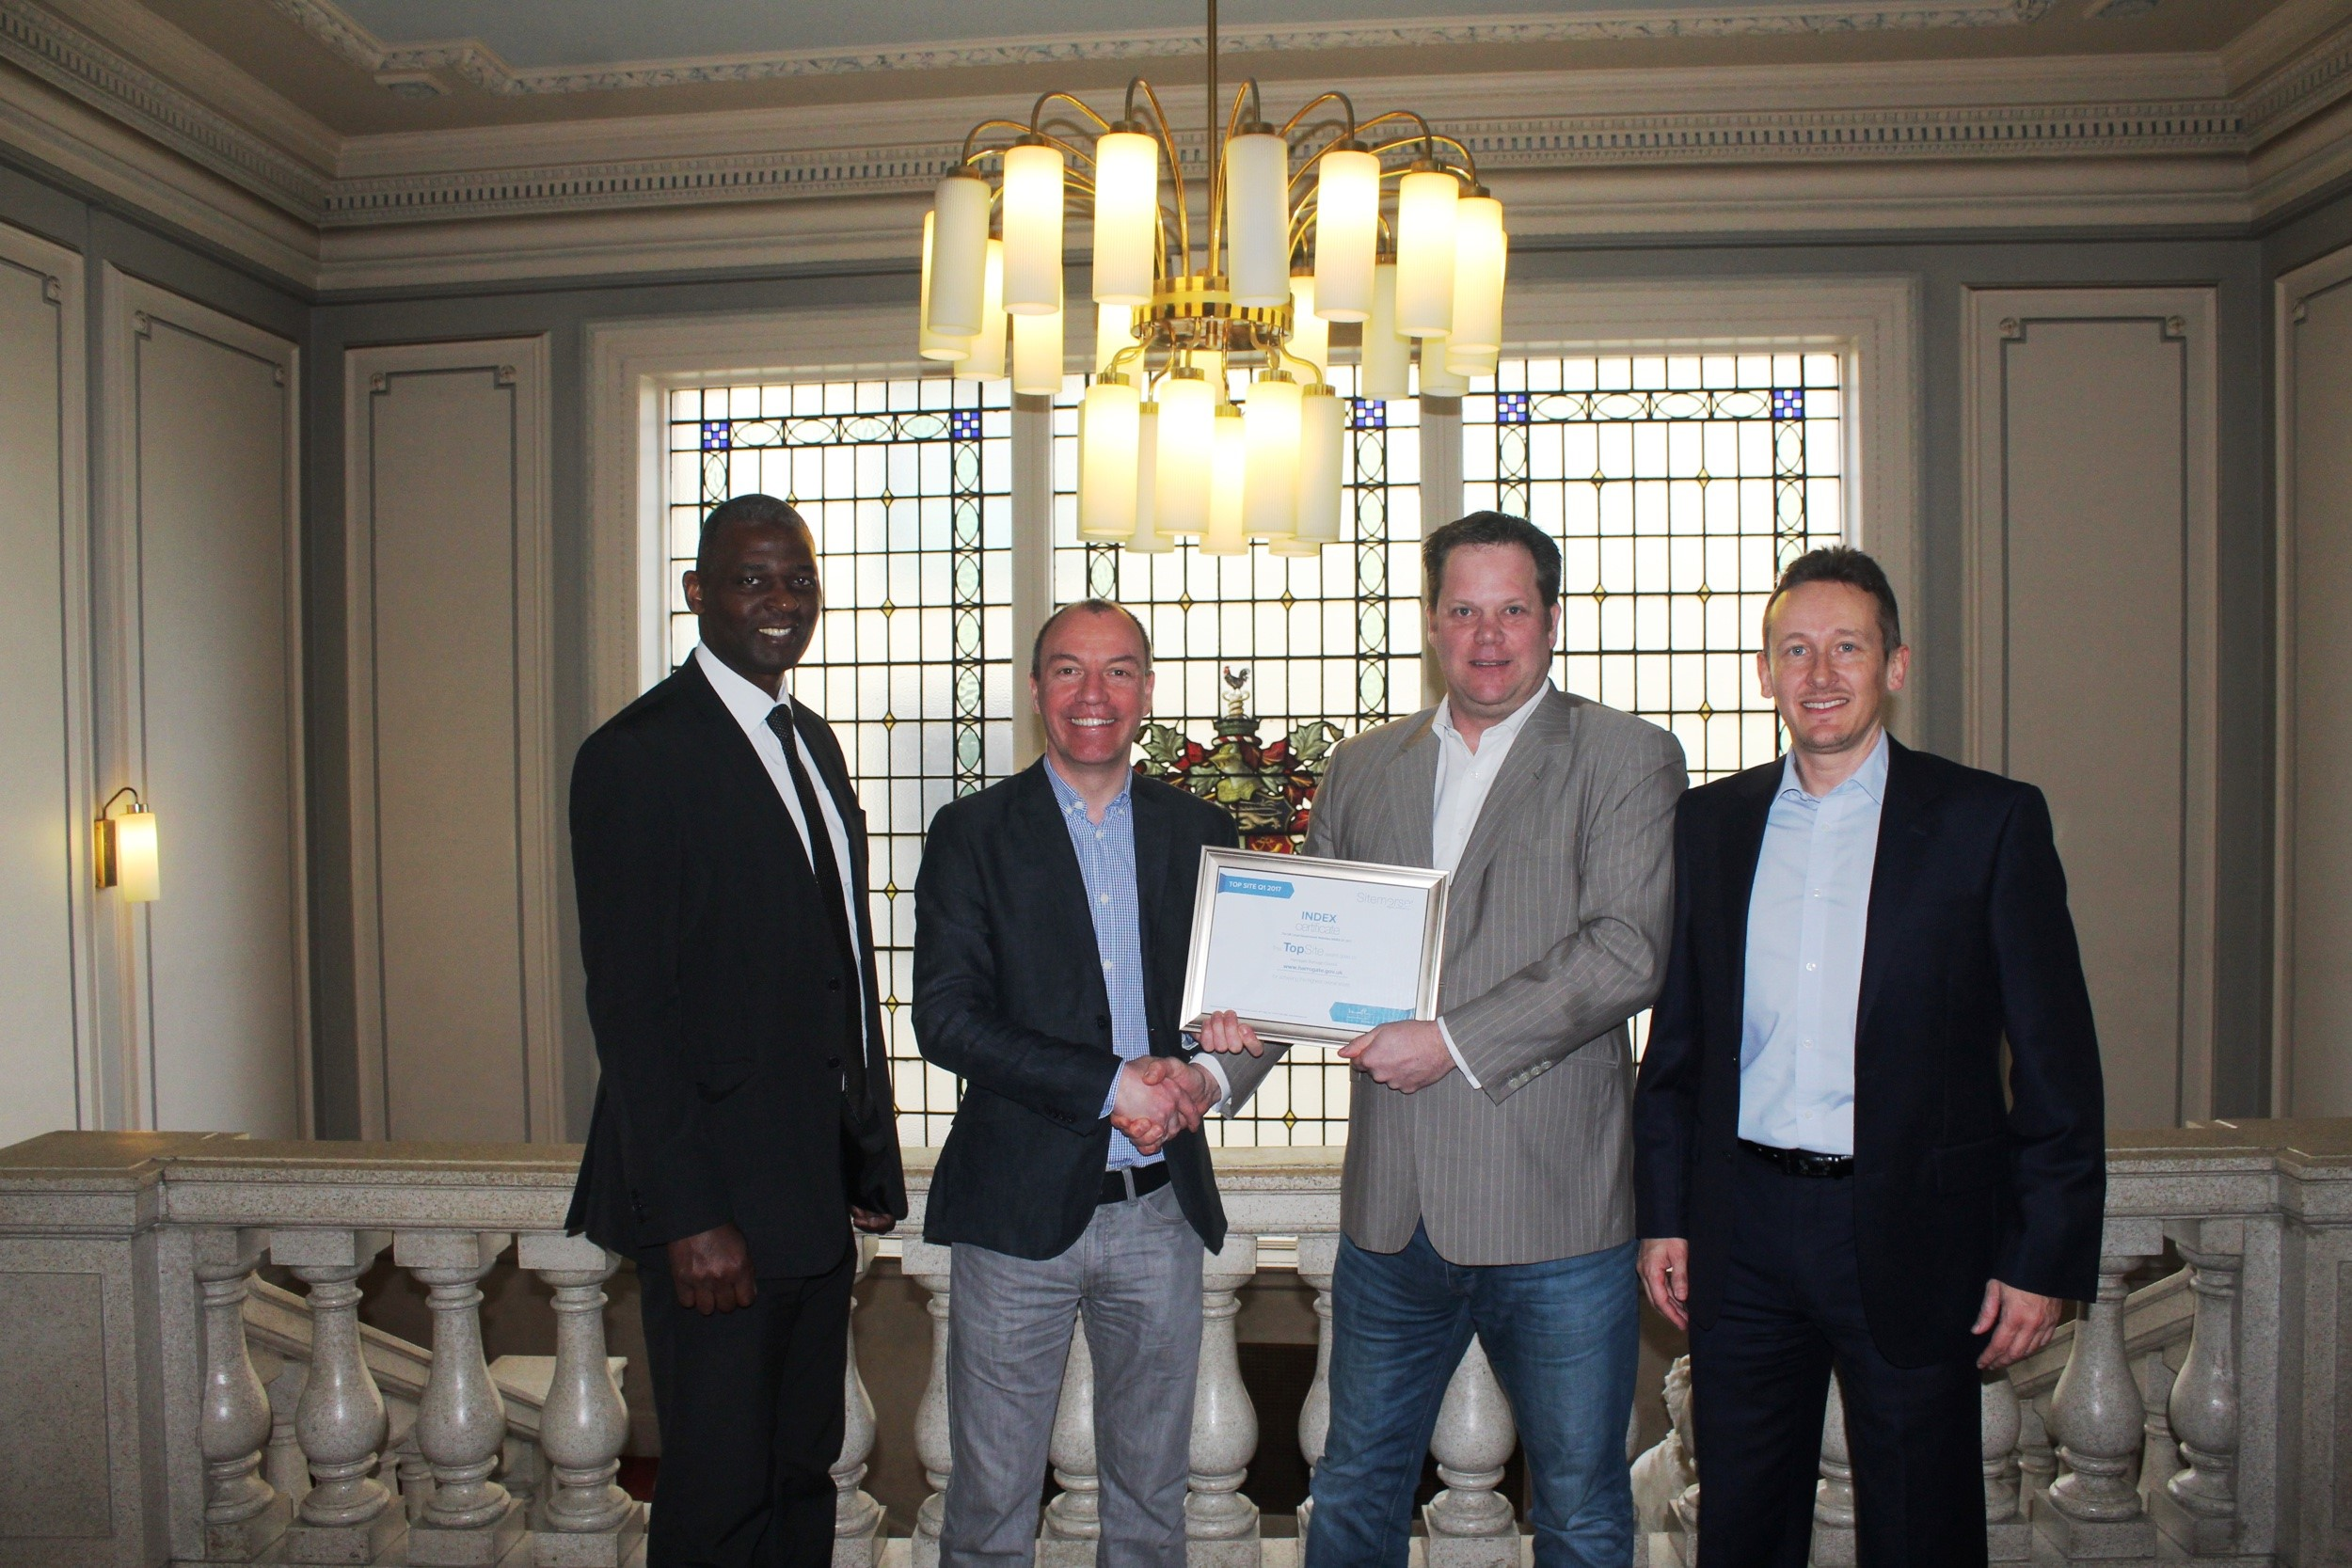 Image of Certificate Handover from Sitemorse to Harrogate